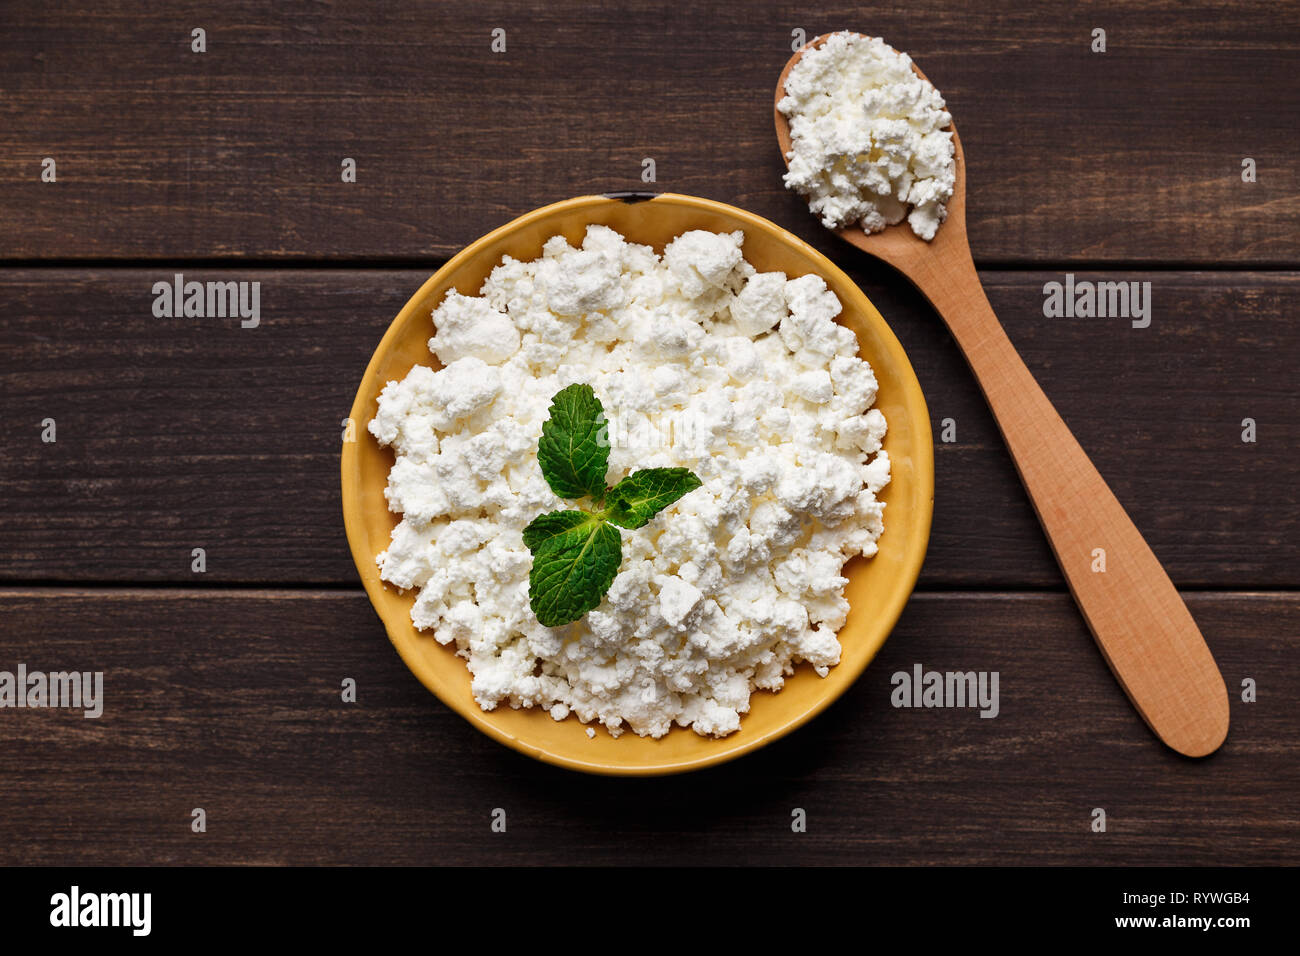 Farm cottage cheese concept - Stock Image